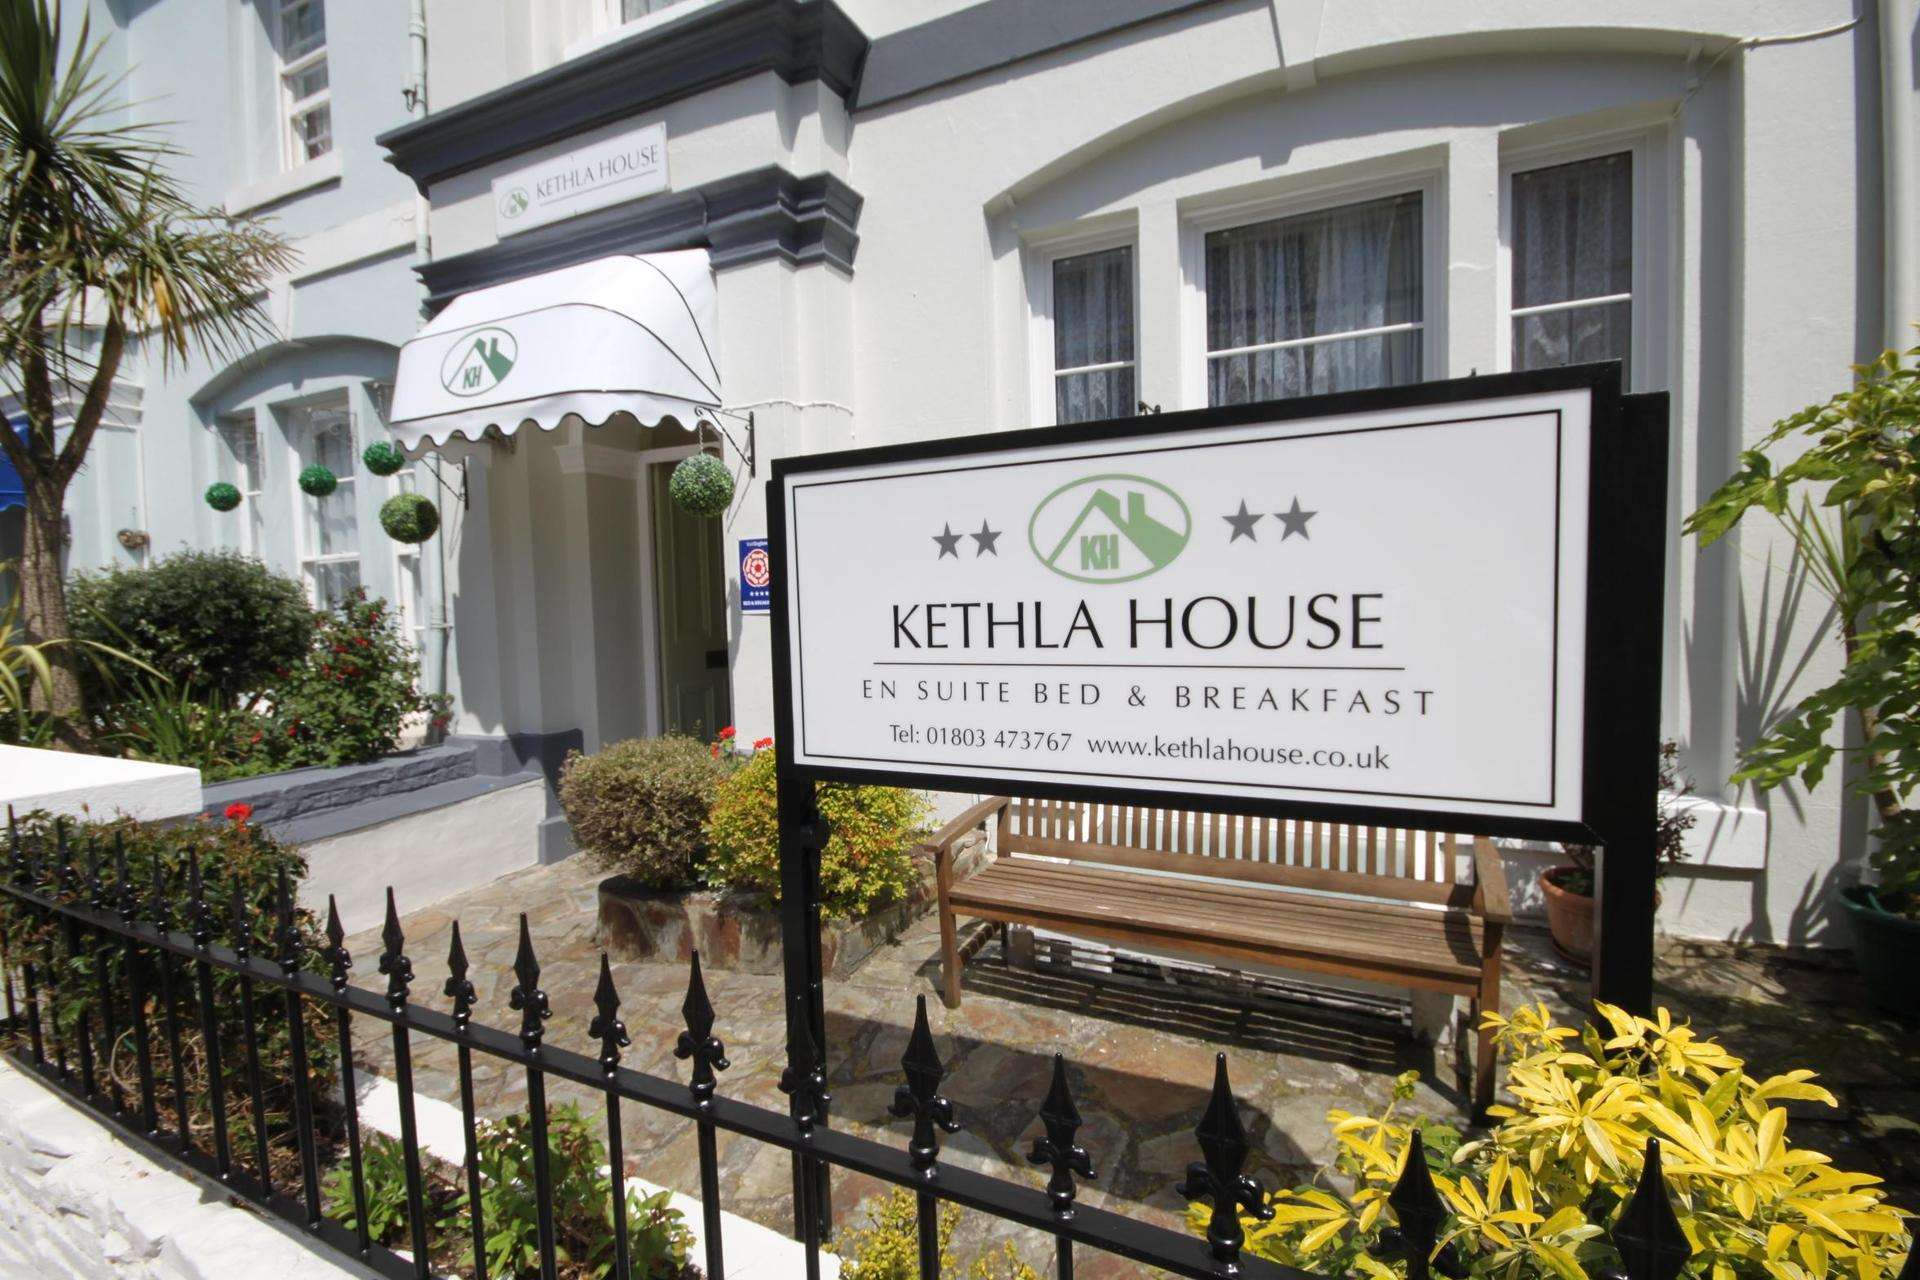 Kethla House Hotel in Devon